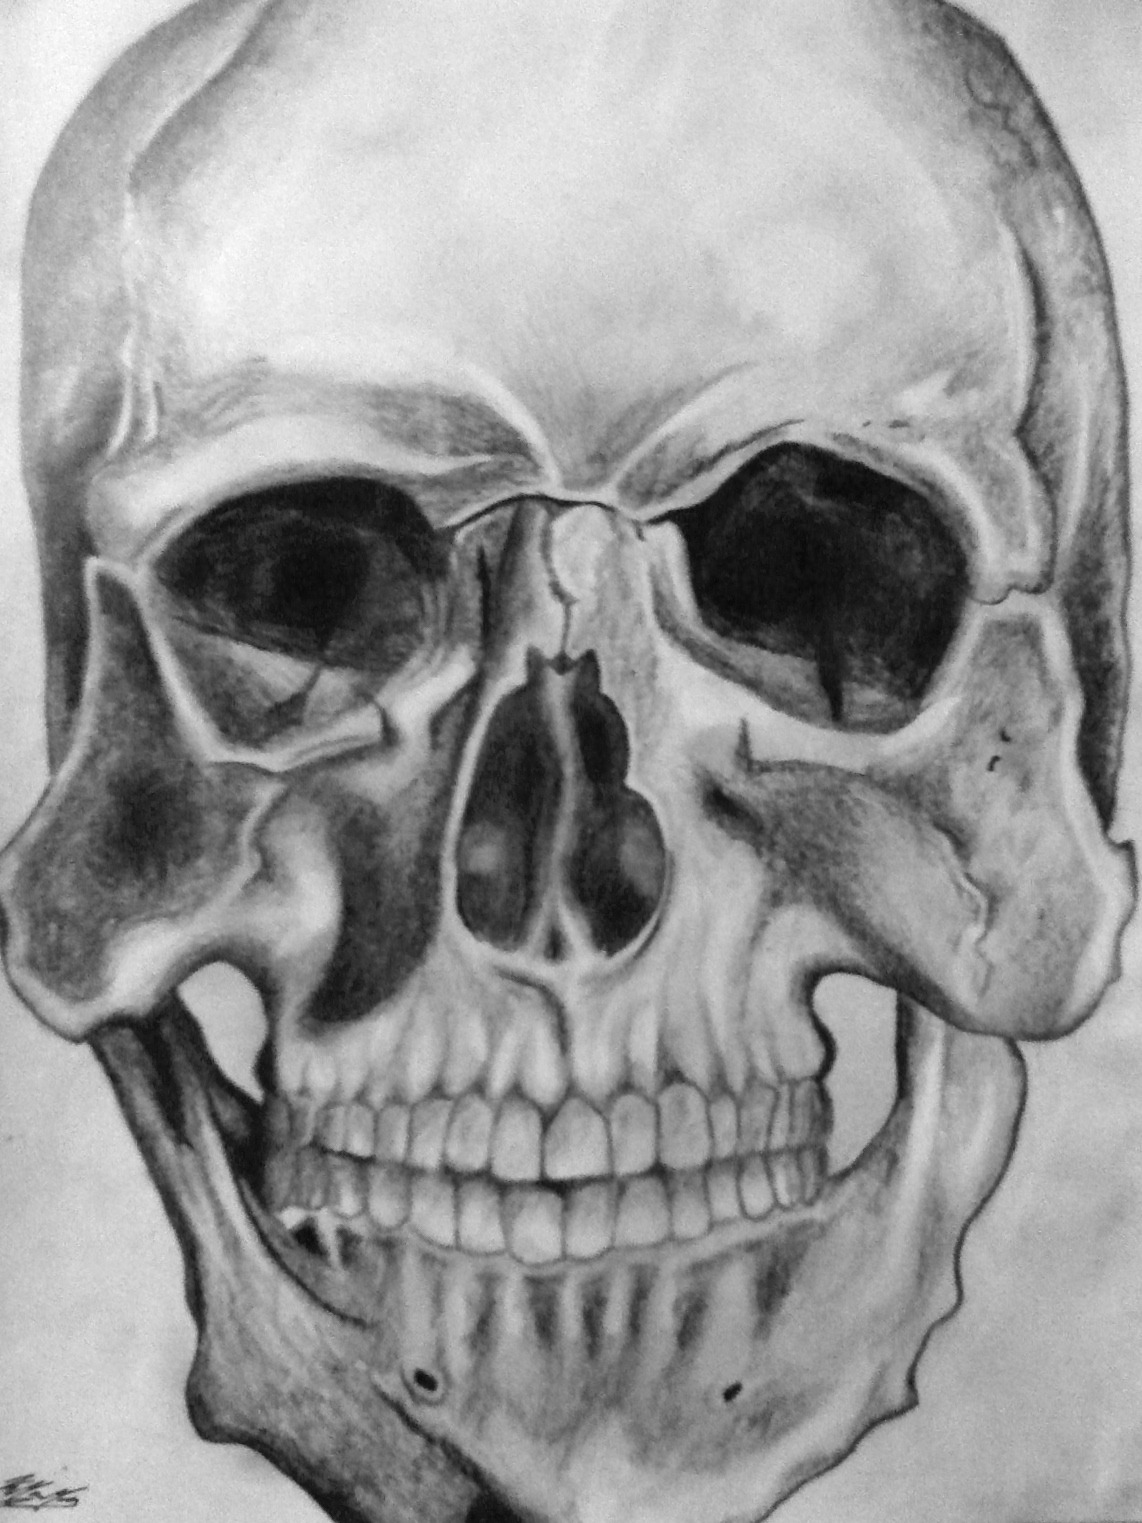 I drew a skull because I felt like it.. Graphite.